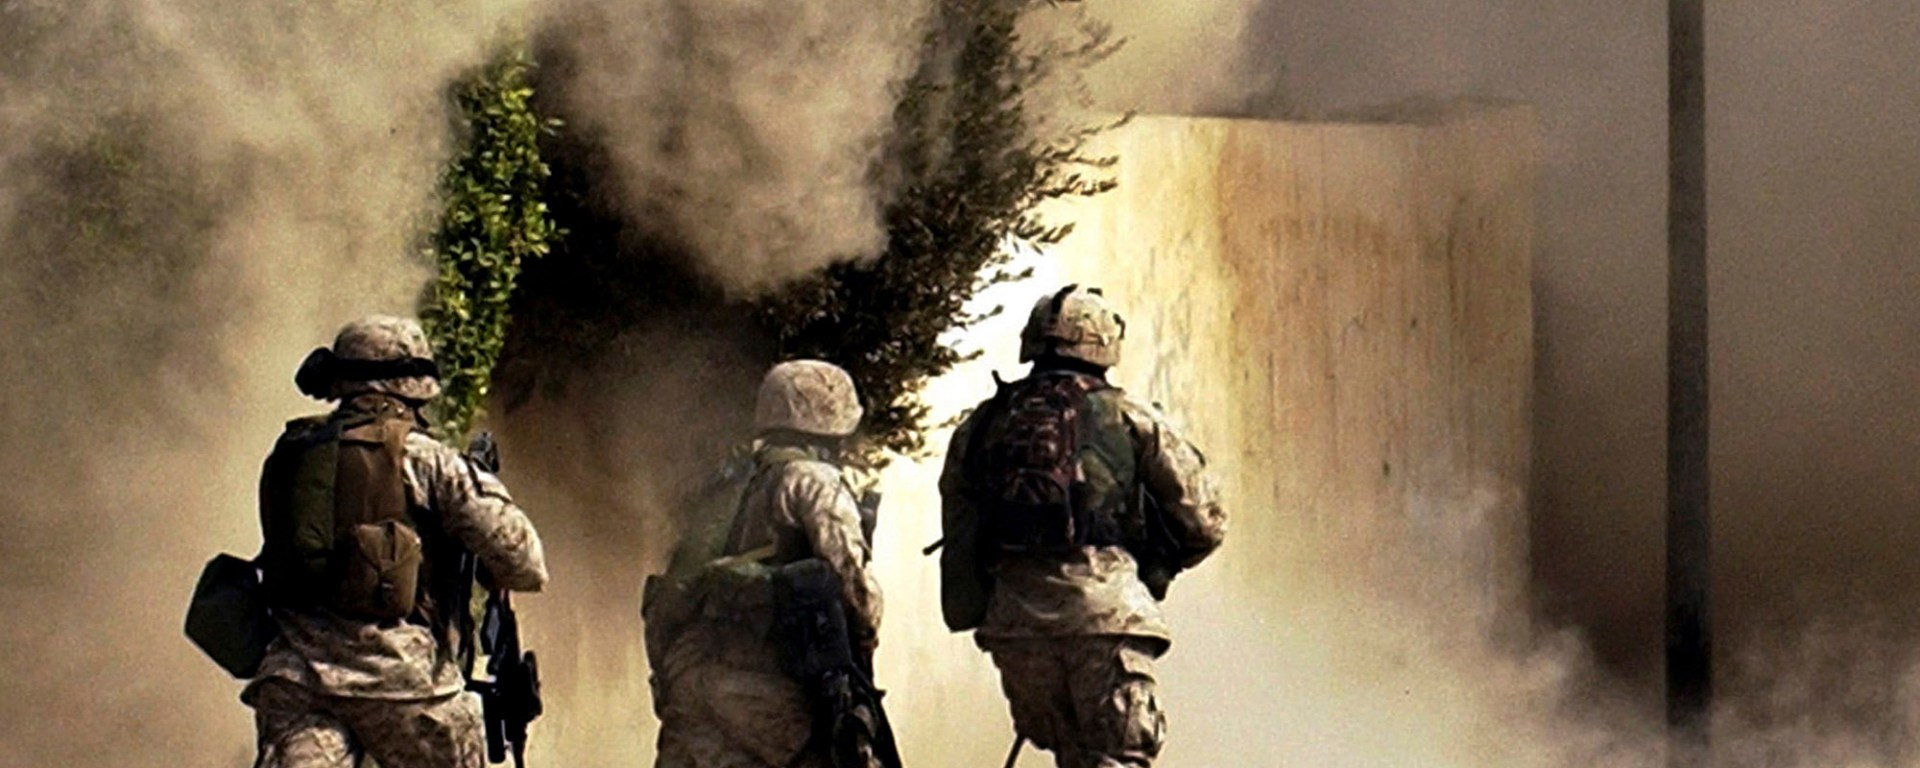 Oct. 26, 2004 U.S. Marines from the 2nd Battalion, 5th Marine Regiment, run to a building after detonating explosives to open a gate during a mission in Ramadi in Anbar province, Iraq.